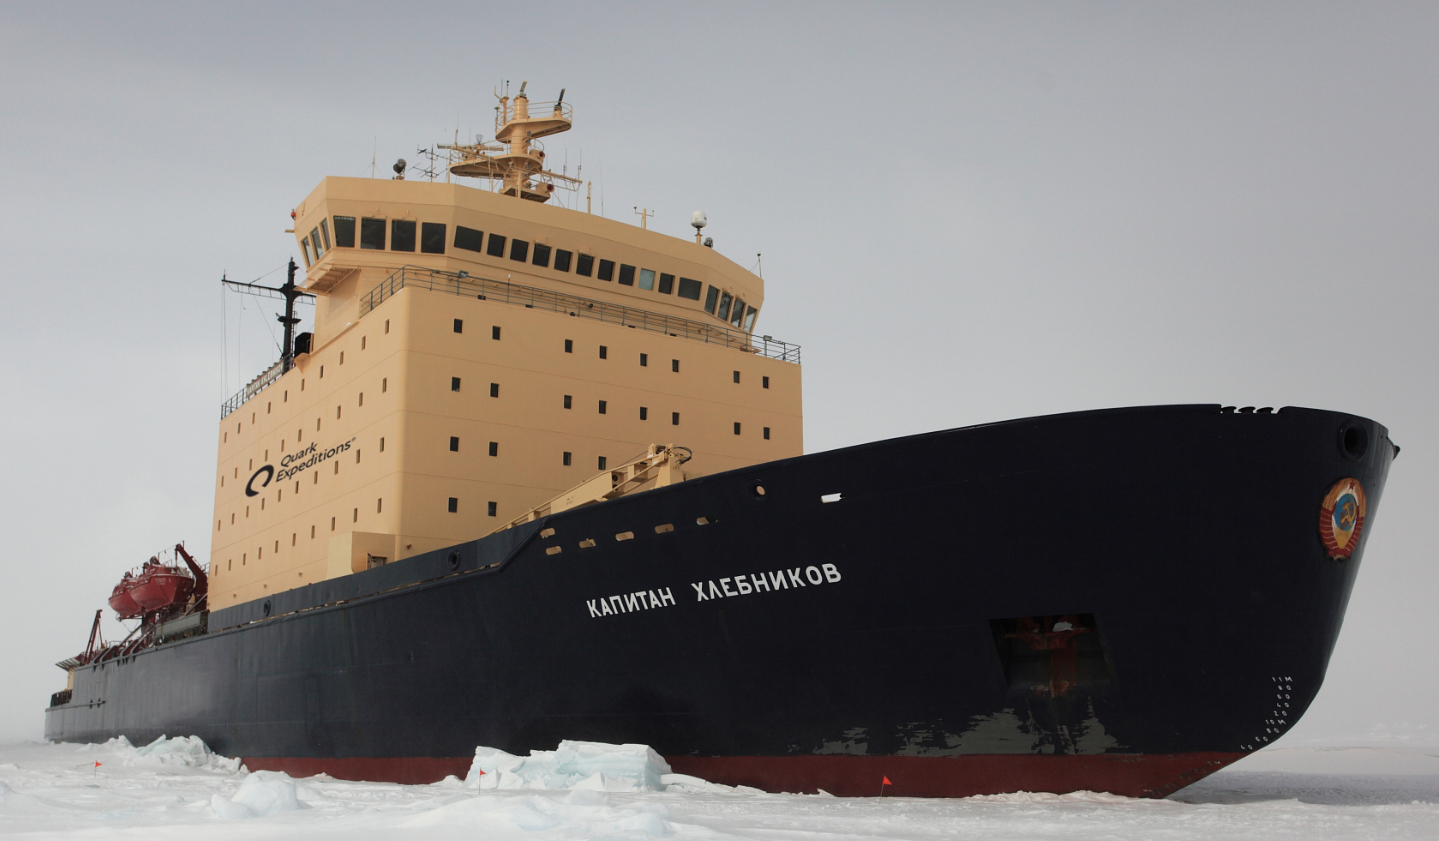 Kapitan Khlebnikov parked off the pack ice at Snow Hill Island